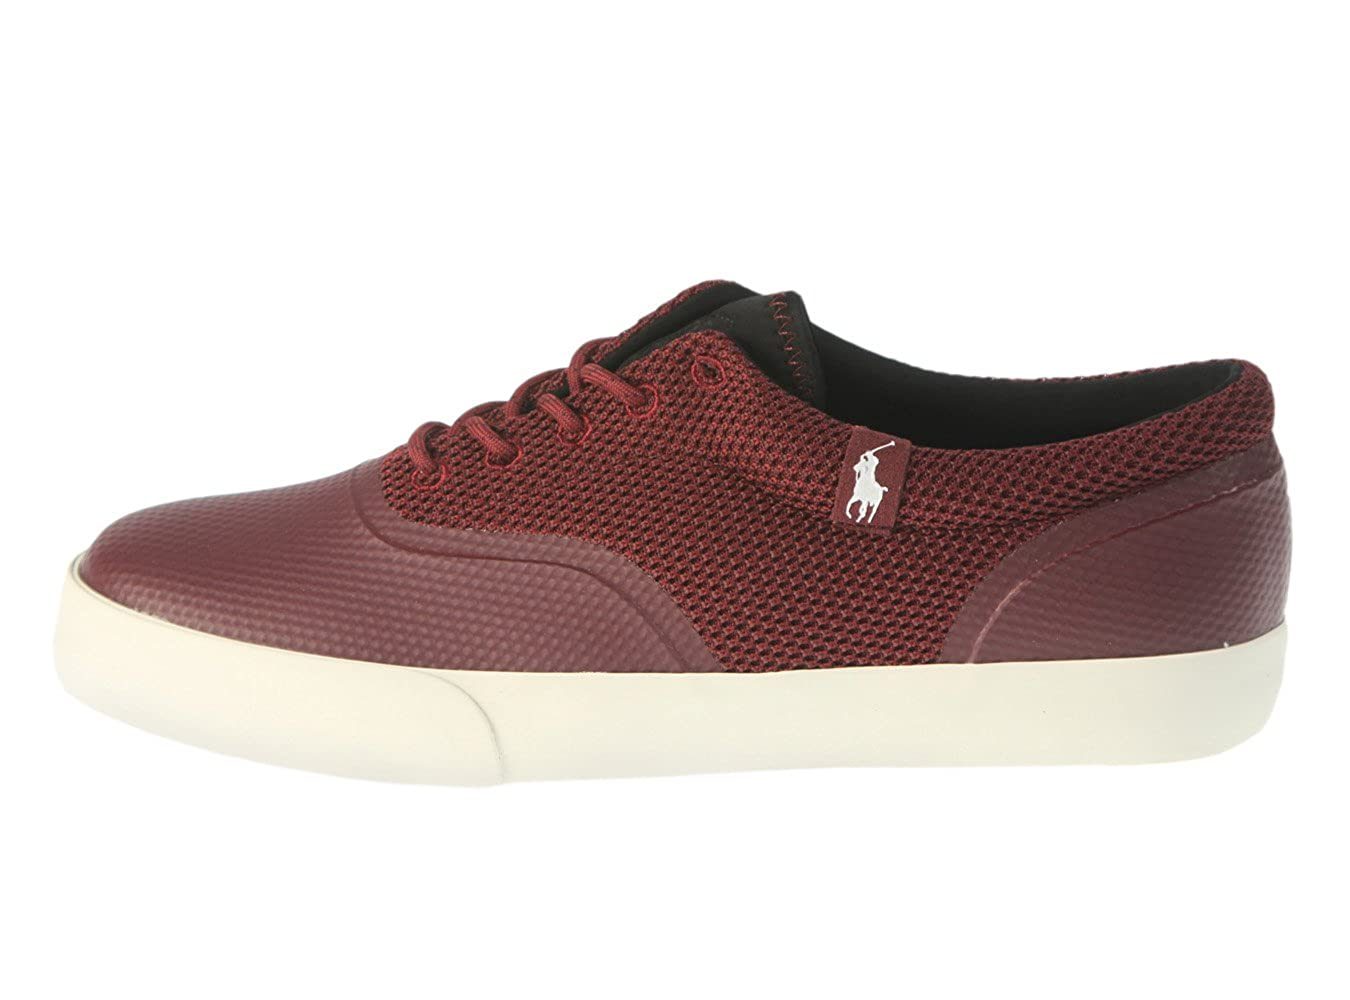 ZAPATILLAS POLO RALPH LAUREN - 816666653004-T44: Amazon.es ...